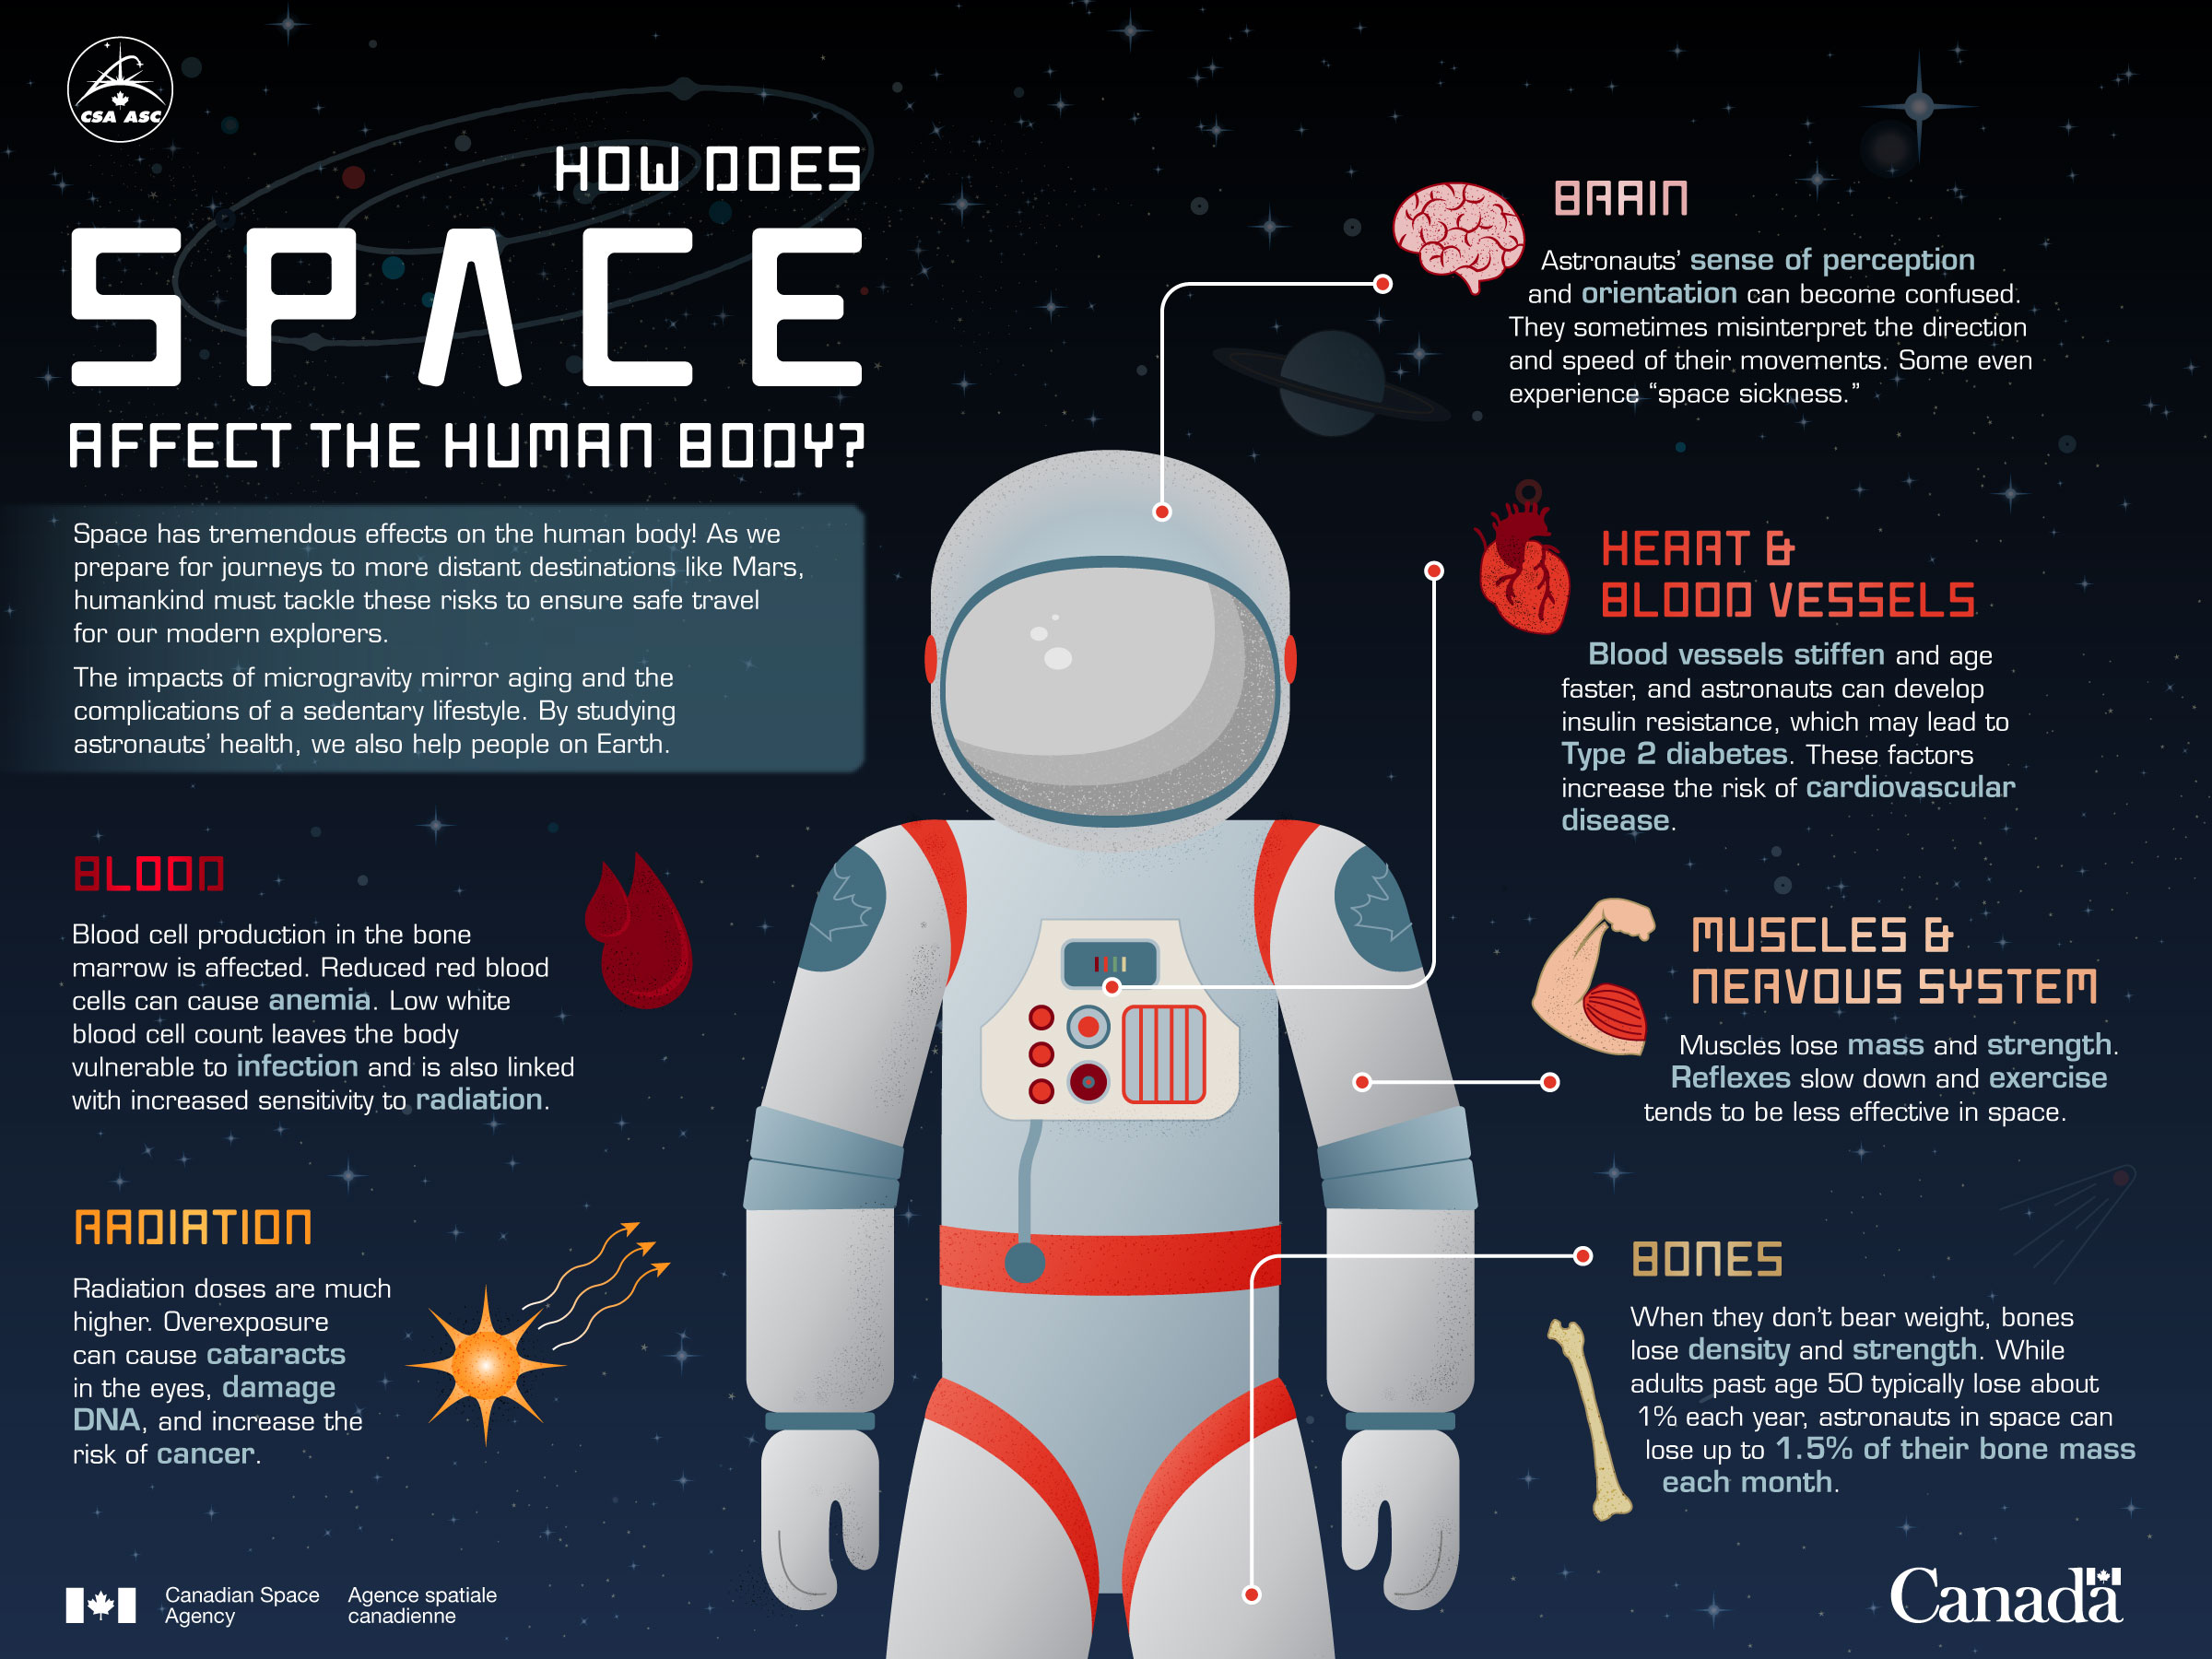 Space has tremendous effects on the human body! As we prepare for journeys to more distant destinations like Mars, humankind must tackle these risks to ensure safe travel for our modern explorers. The impacts of microgravity mirror aging and the complications of a sedentary lifestyle. By studying astronauts' health, we also help people on Earth. (Credit: Canadian Space Agency)